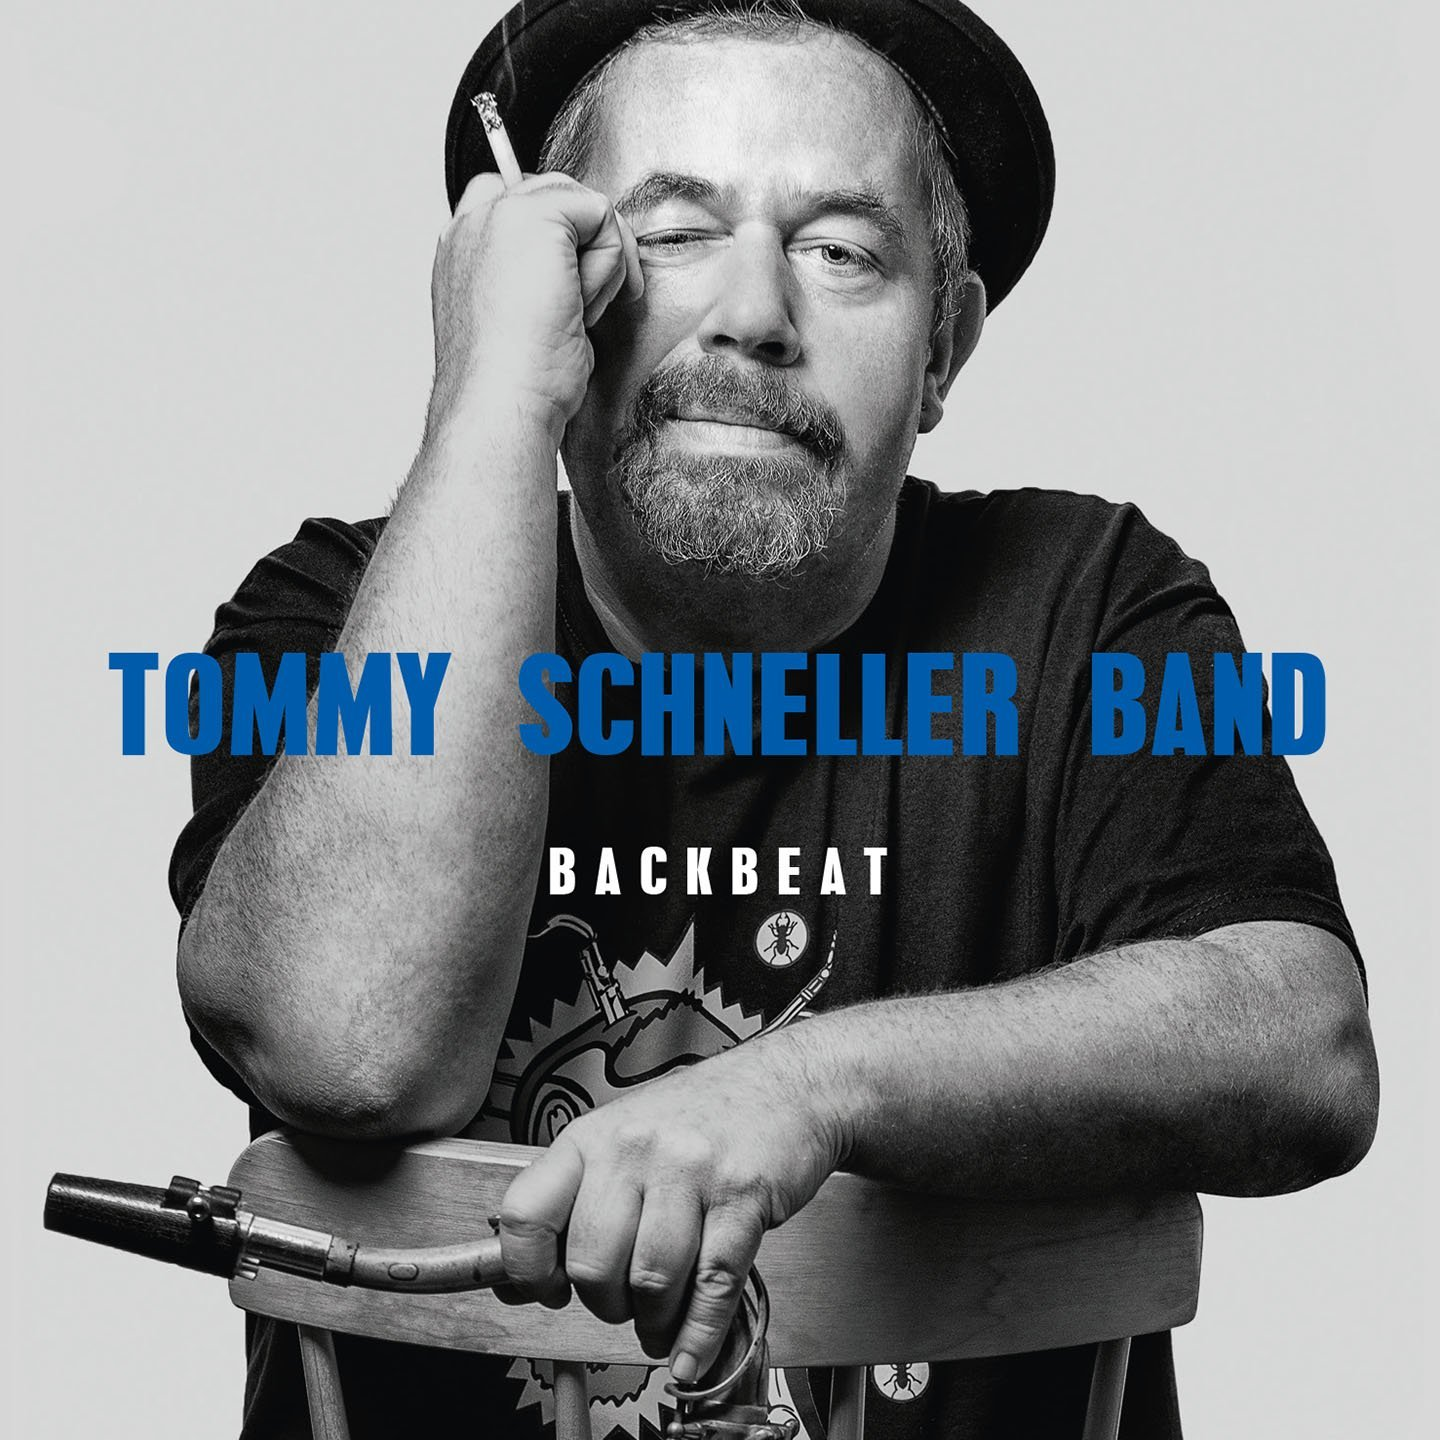 TOMMY SCHNELLER BAND – Tryin' to letgo